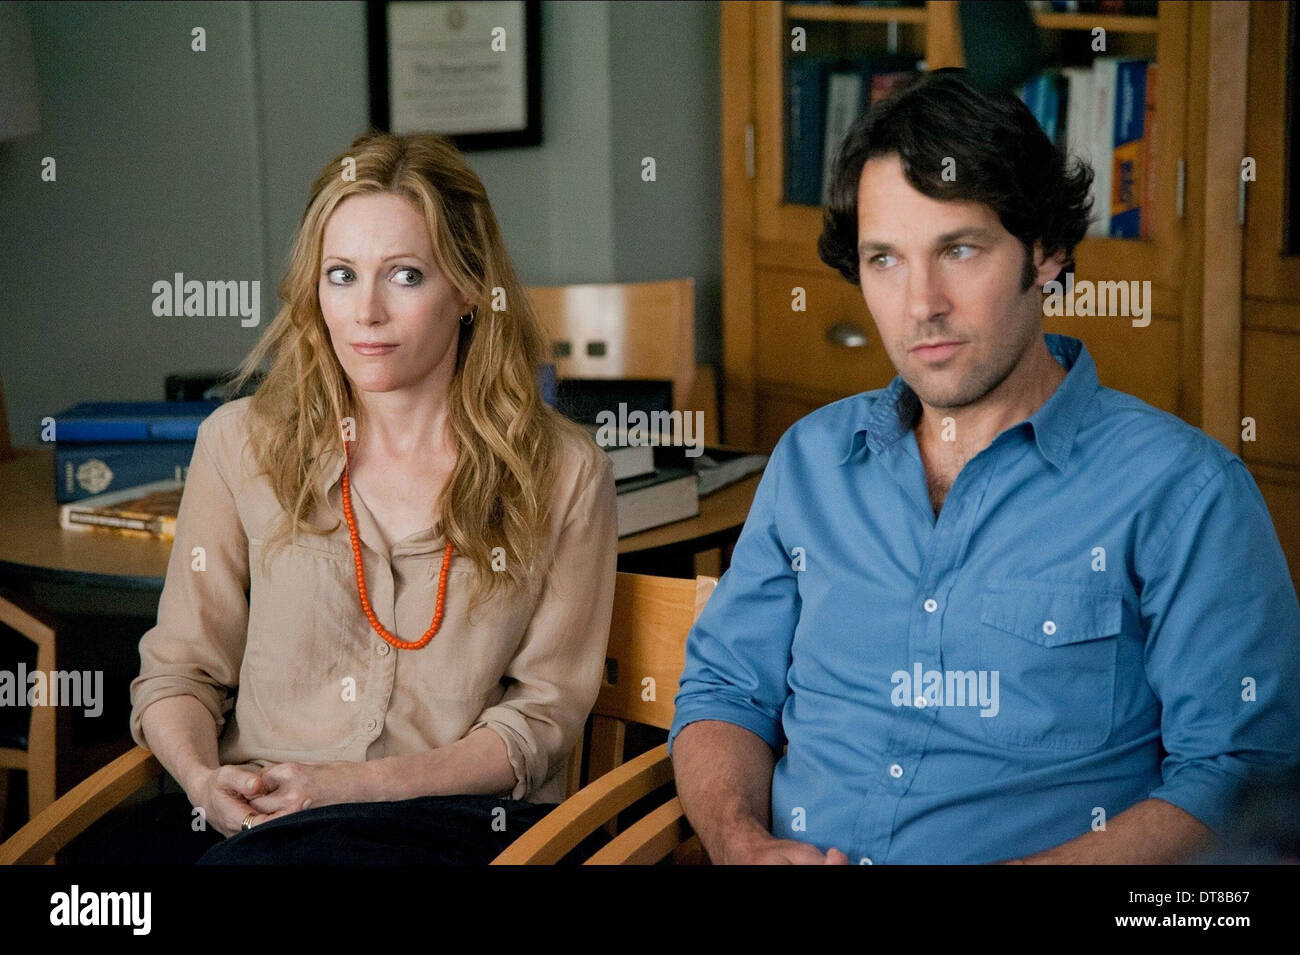 LESLIE MANN & PAUL RUDD THIS IS 40 (2012) - Stock Image